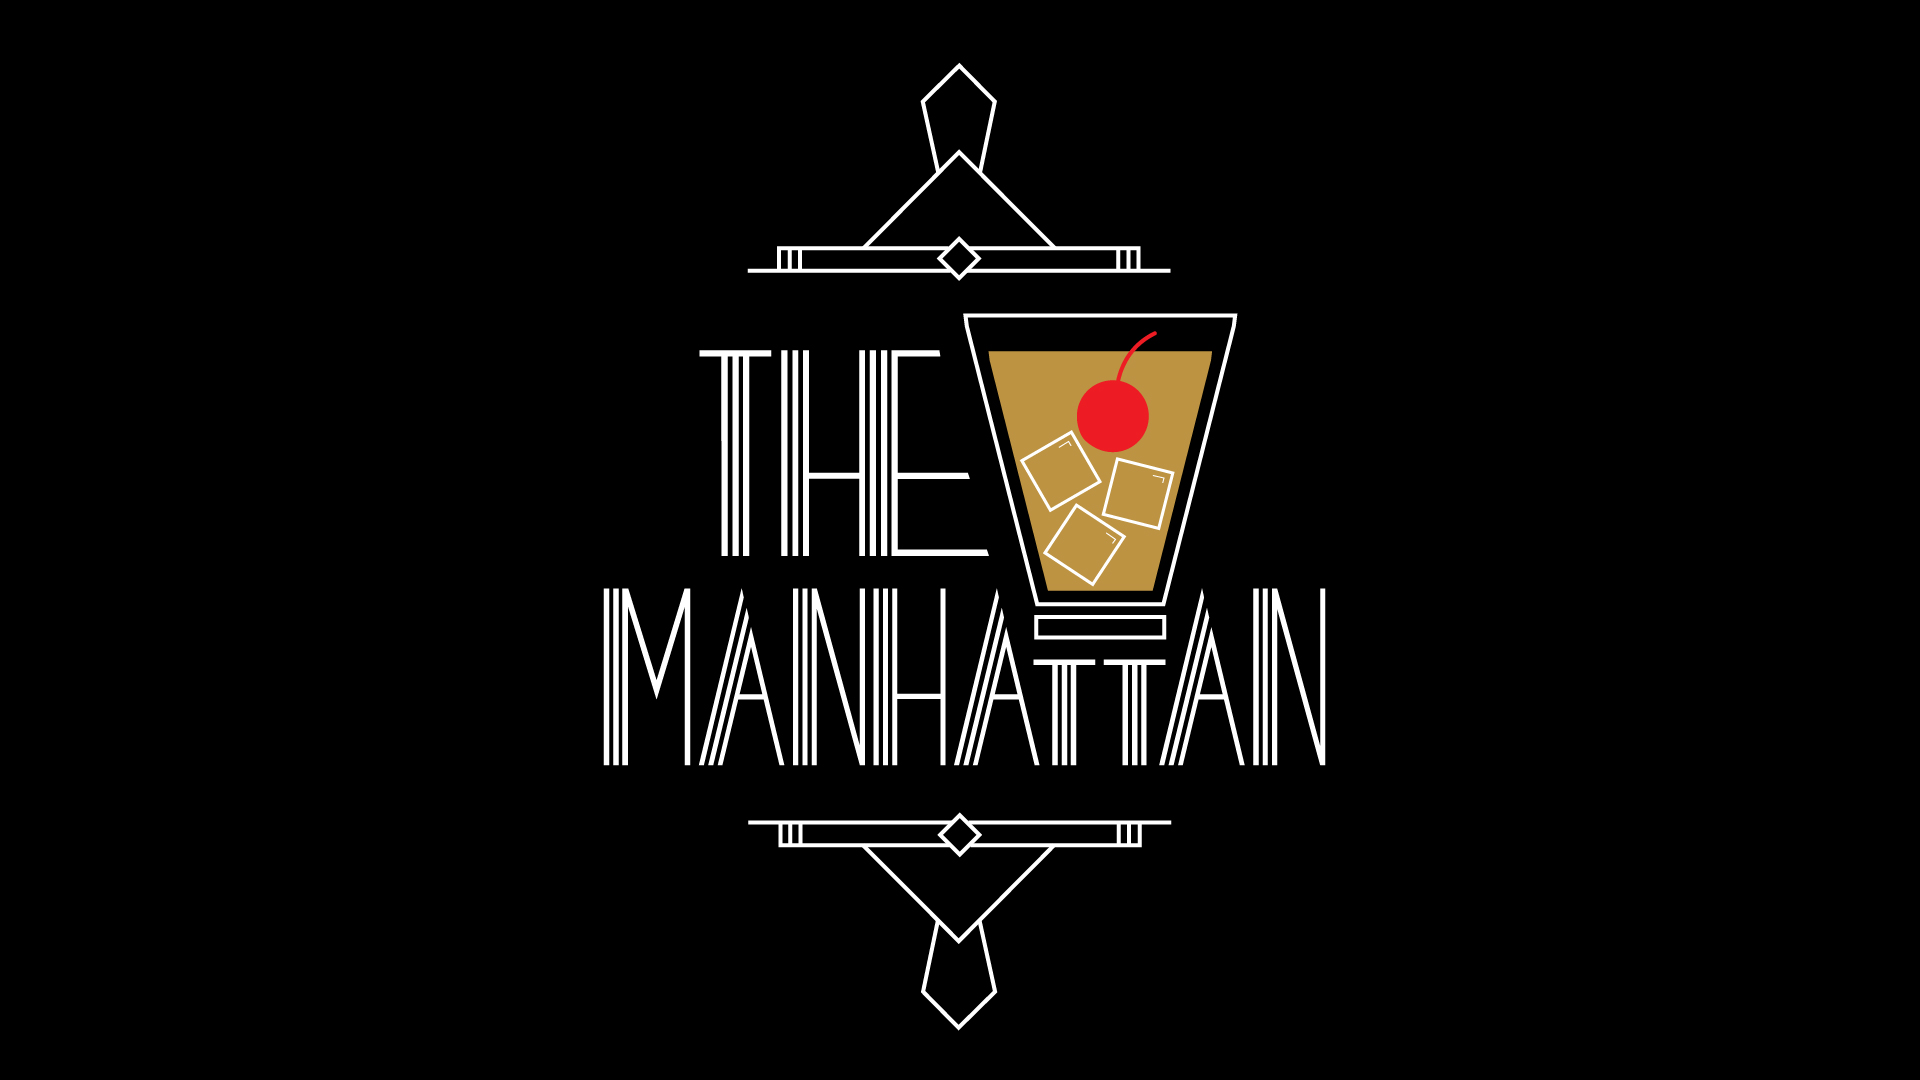 The Manhattan_Compo-01.jpg